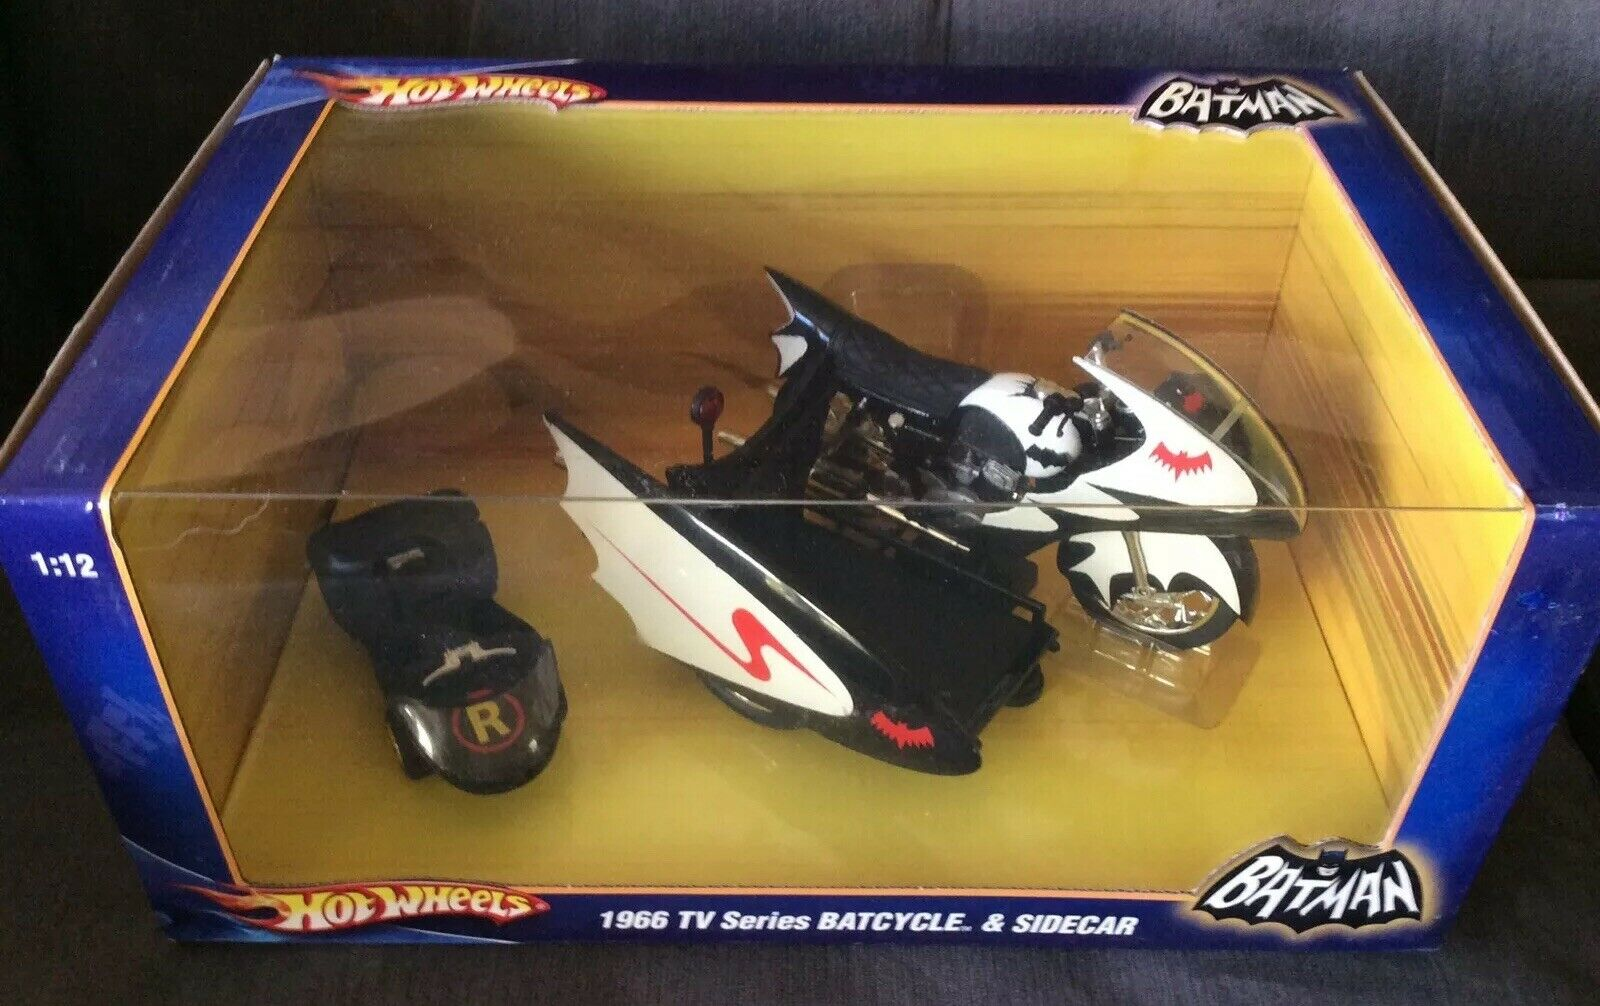 heiß WHEELS Diecast 1 12 Batman 1966 TV serie BATCYCLE Sidecar MIB Mint NEW 2009